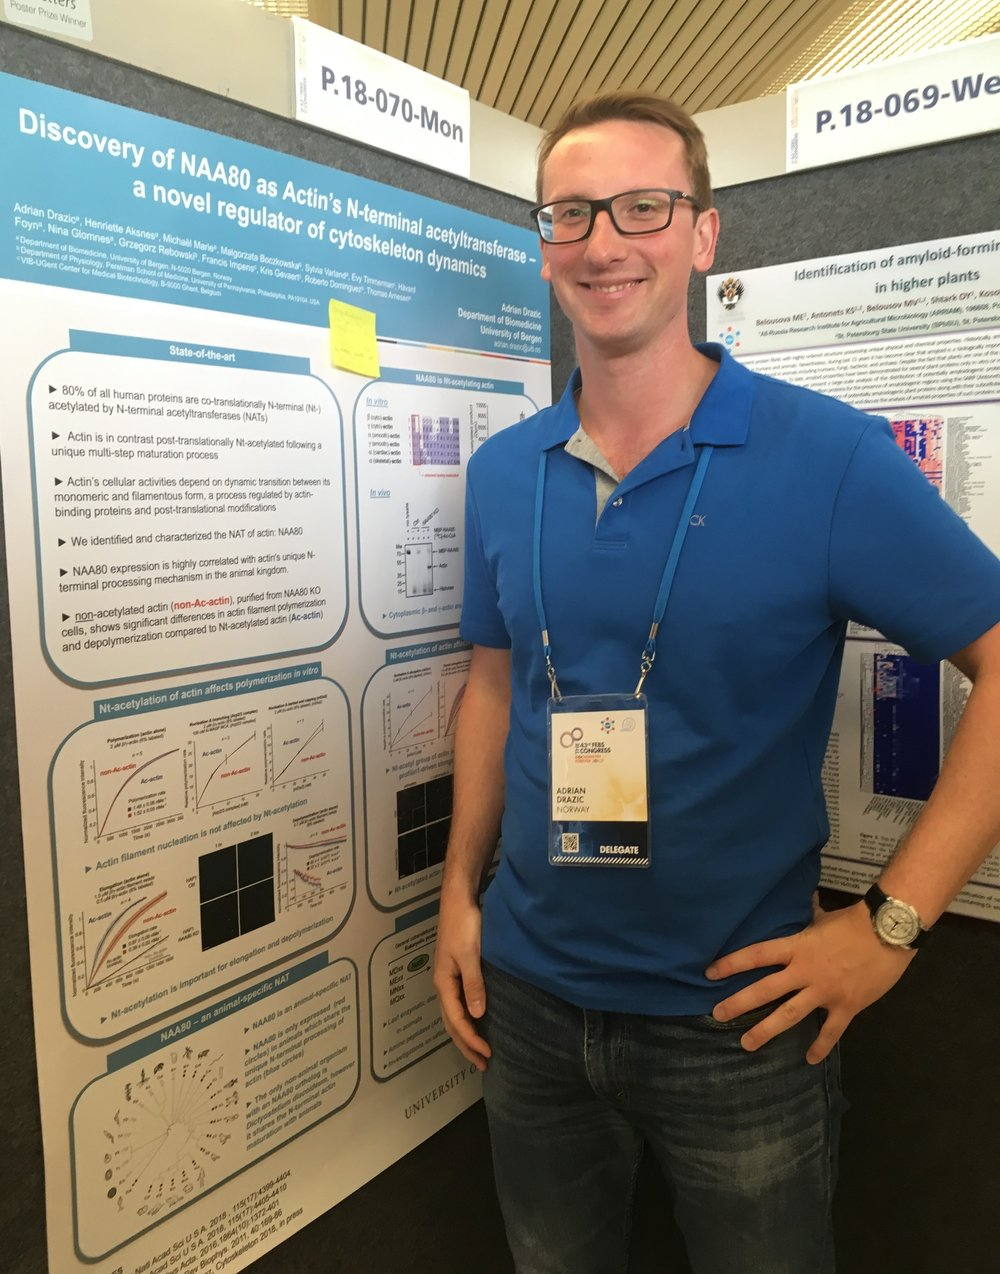 "Adrian Drazic's poster ""Discovery of NAA80 as actin's N-terminal acetyltransferase – a novel regulator of cytoskeleton dynamics"" won the FEBS Letter daily poster award"